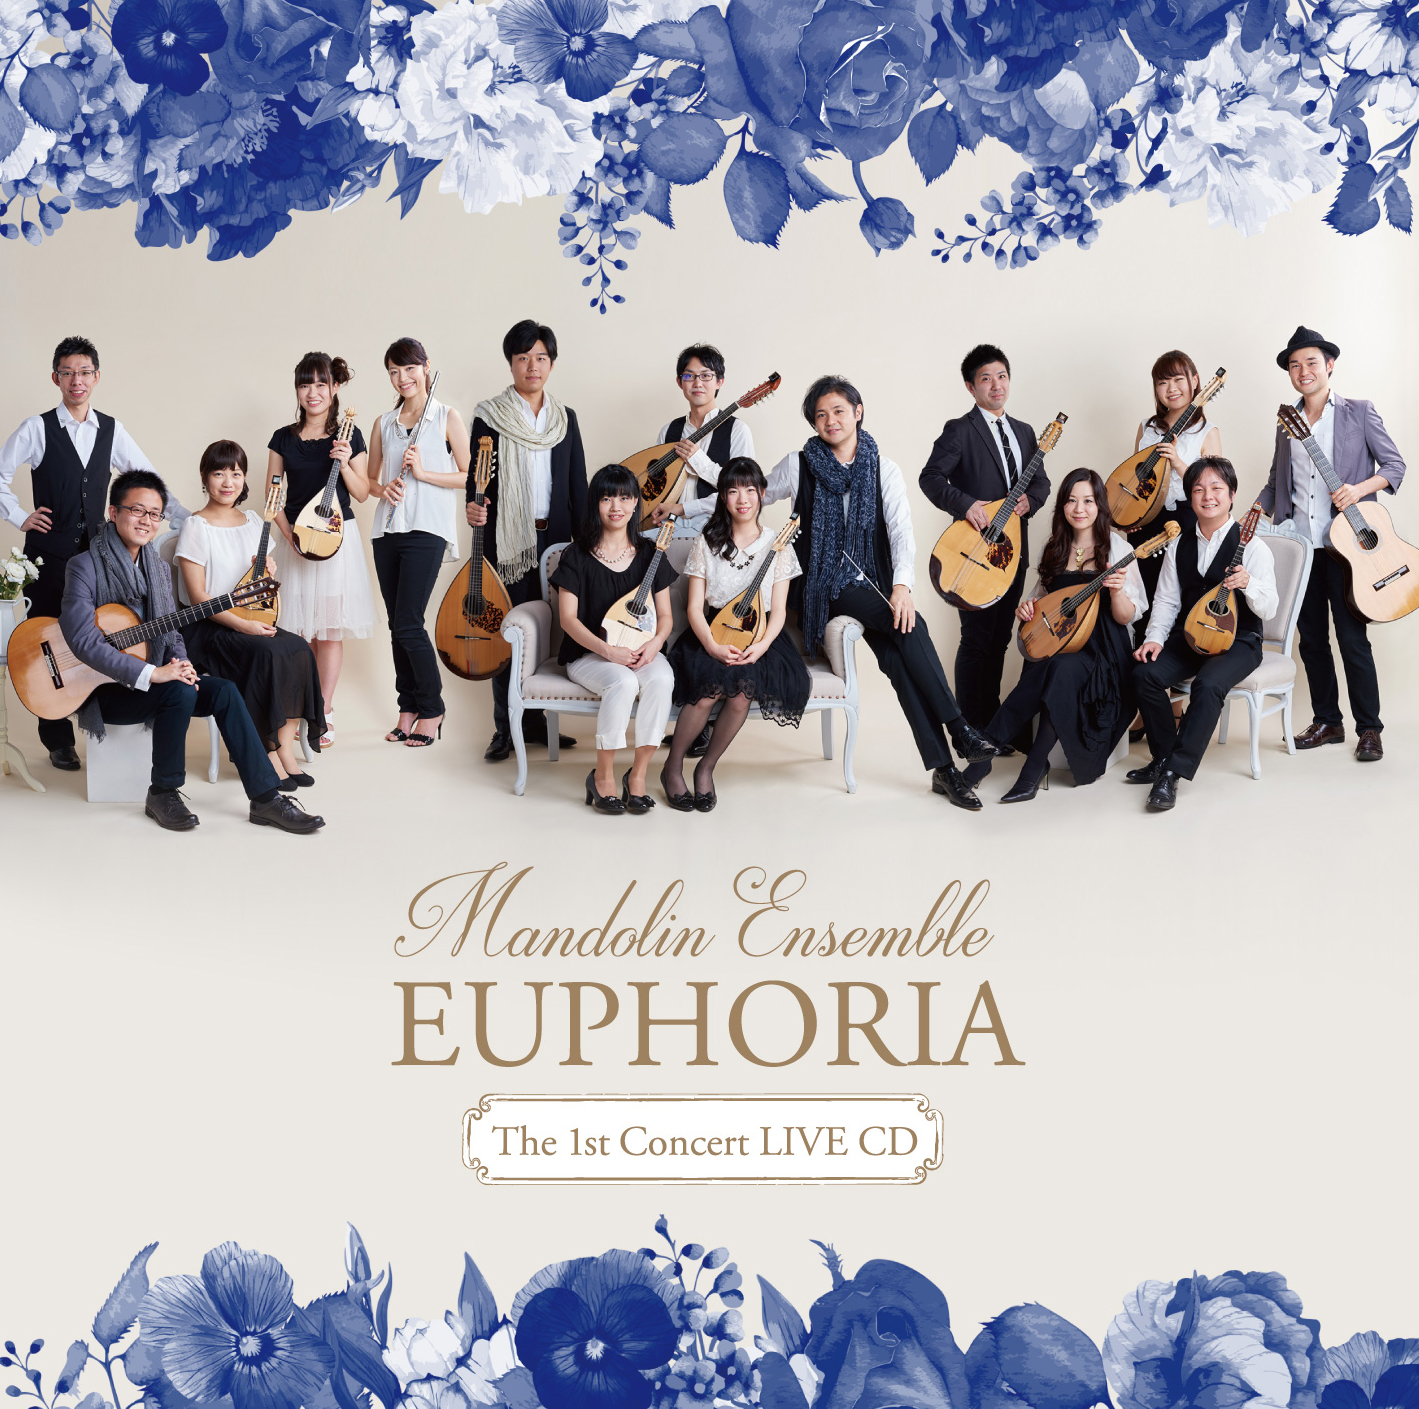 Mandolin Ensemble EUPHORIA 第1回演奏会 LIVE CD